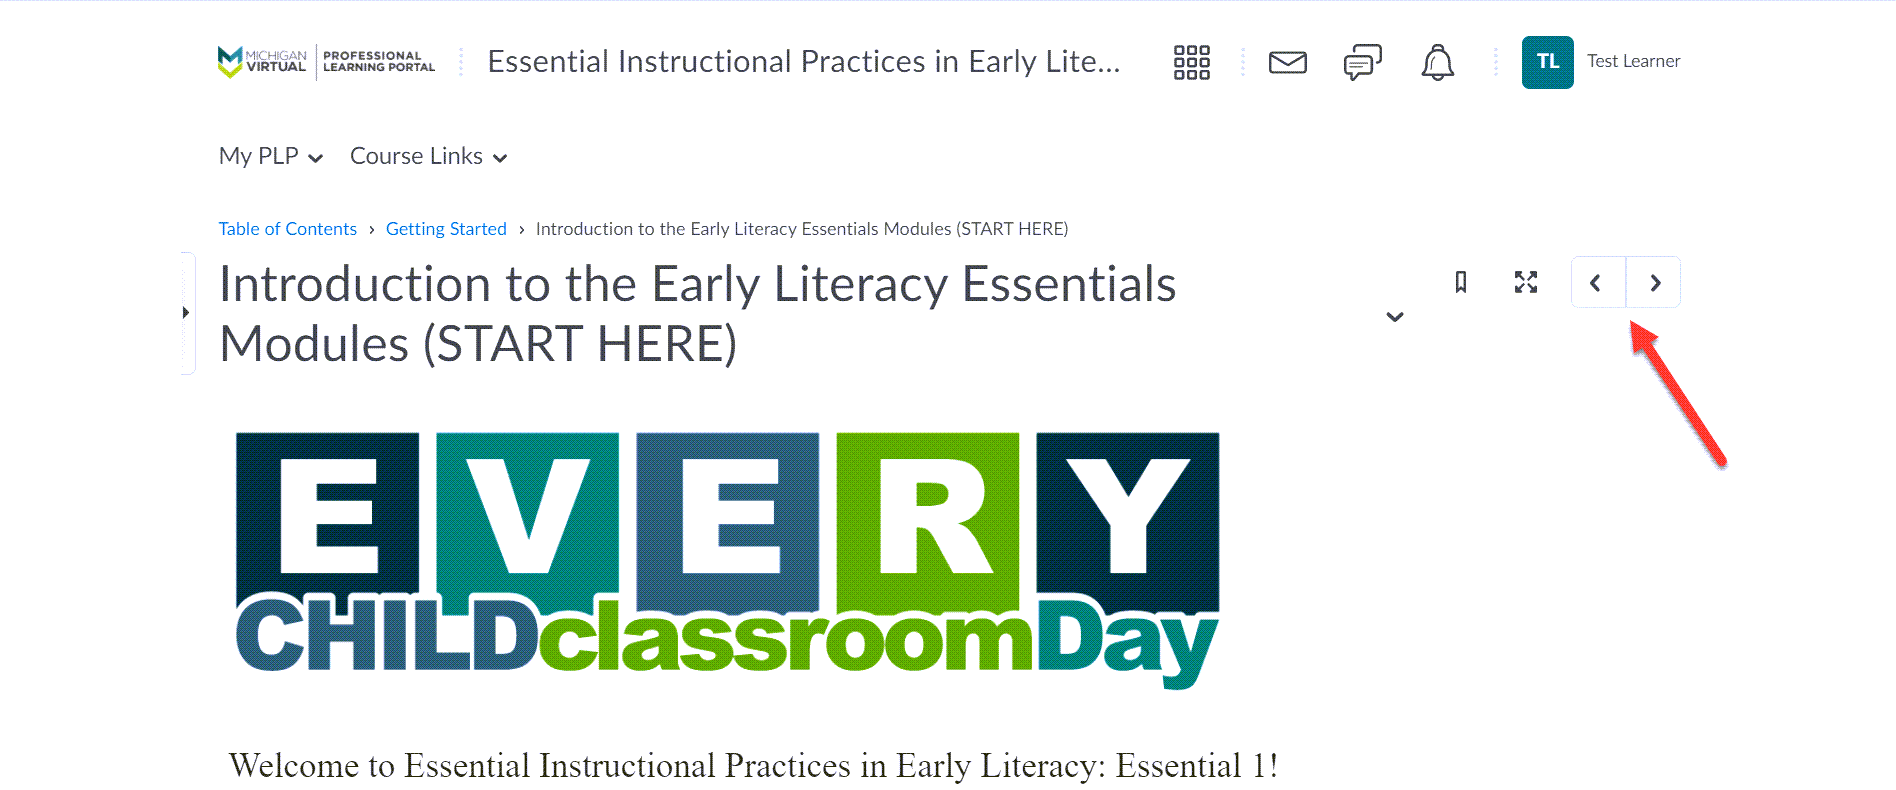 """An Image of the topic item titled """"Introduction to the Early Literacy Essentials Modules"""" is shown with an arrow pointing to the Previous and Next buttons shown at the top of the page."""